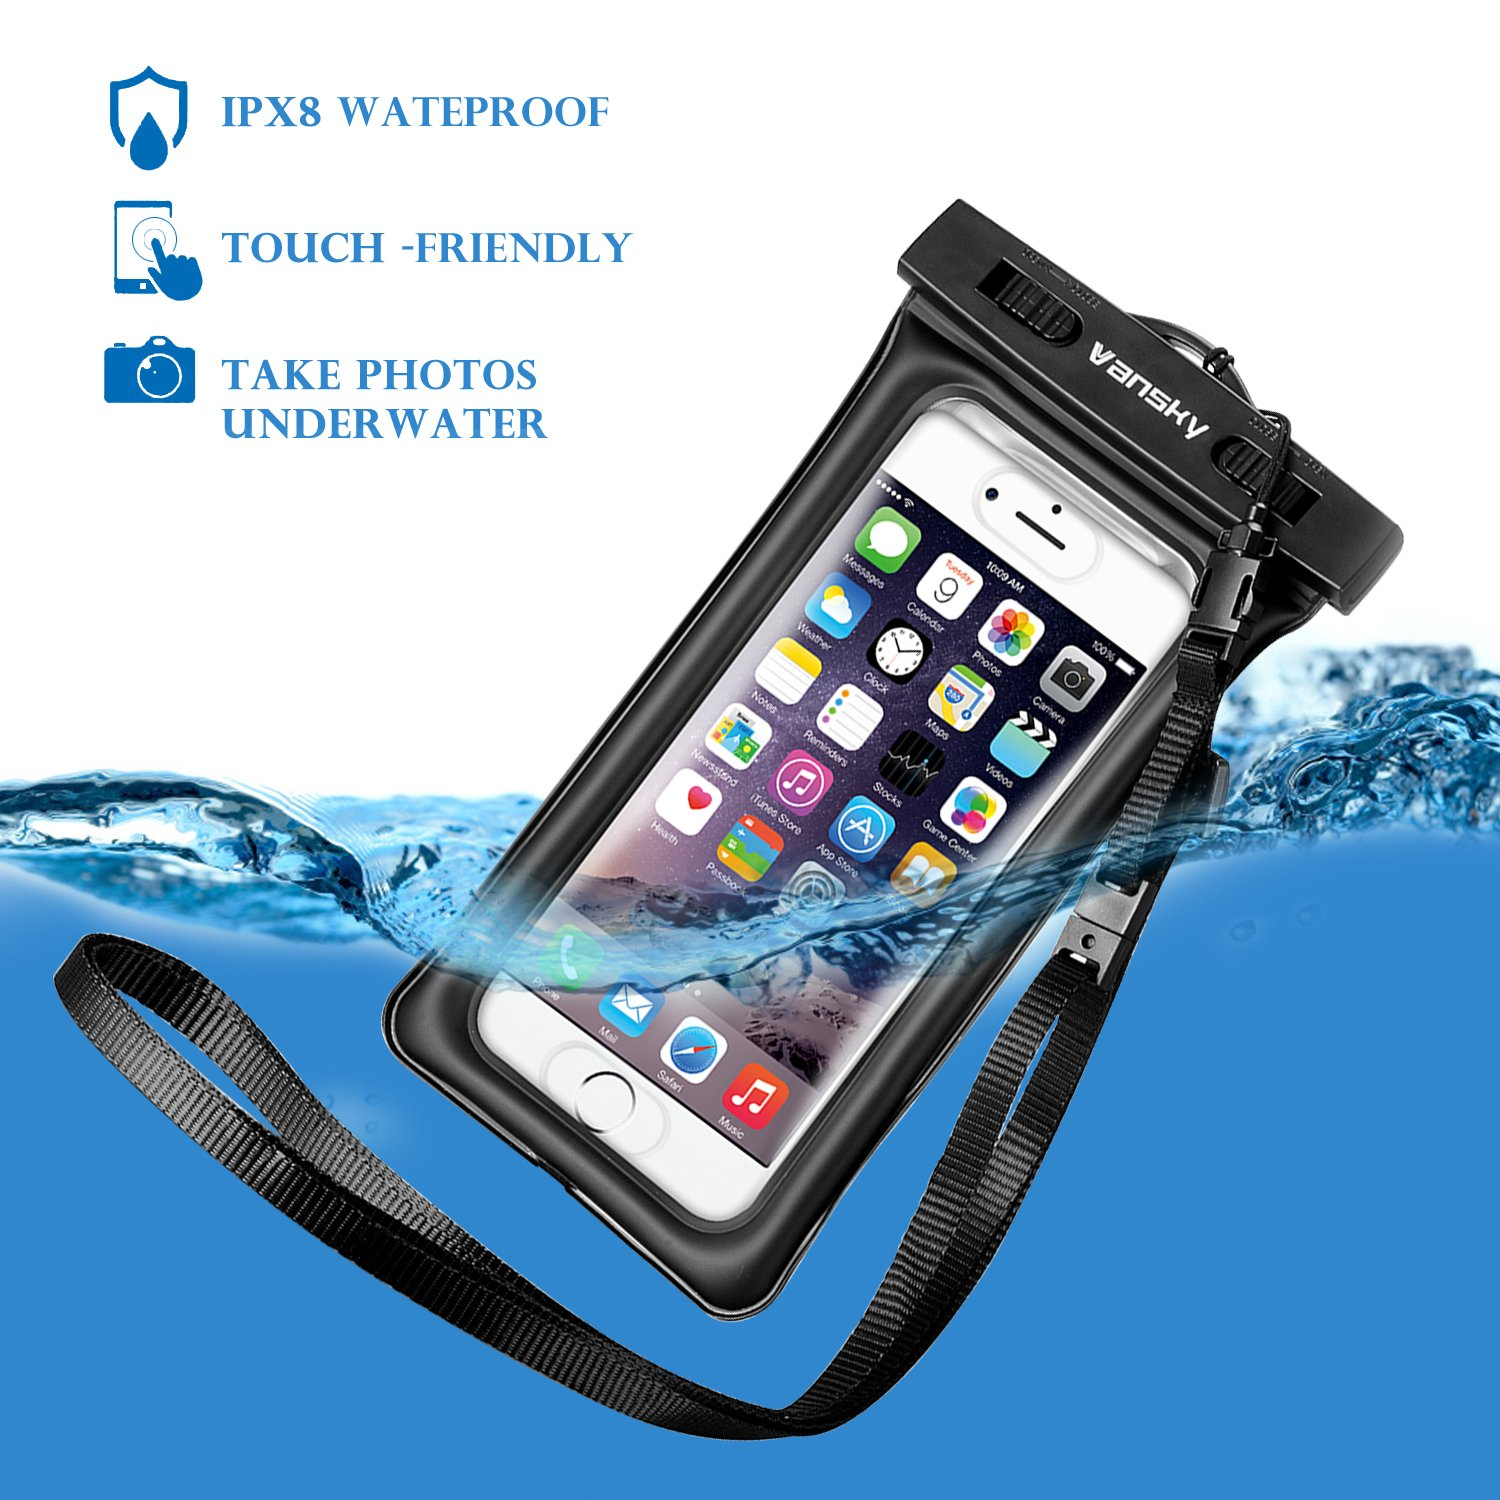 Floatable Waterproof Phone Case, Vansky Waterproof Phone Pouch Dry Bag with Armband and Audio Jack for iPhone X, 8 Plus, 8, 7 Plus, 7, 6s, 6, Andriod; TPU Construction IPX8 Certified by Vansky (Image #9)